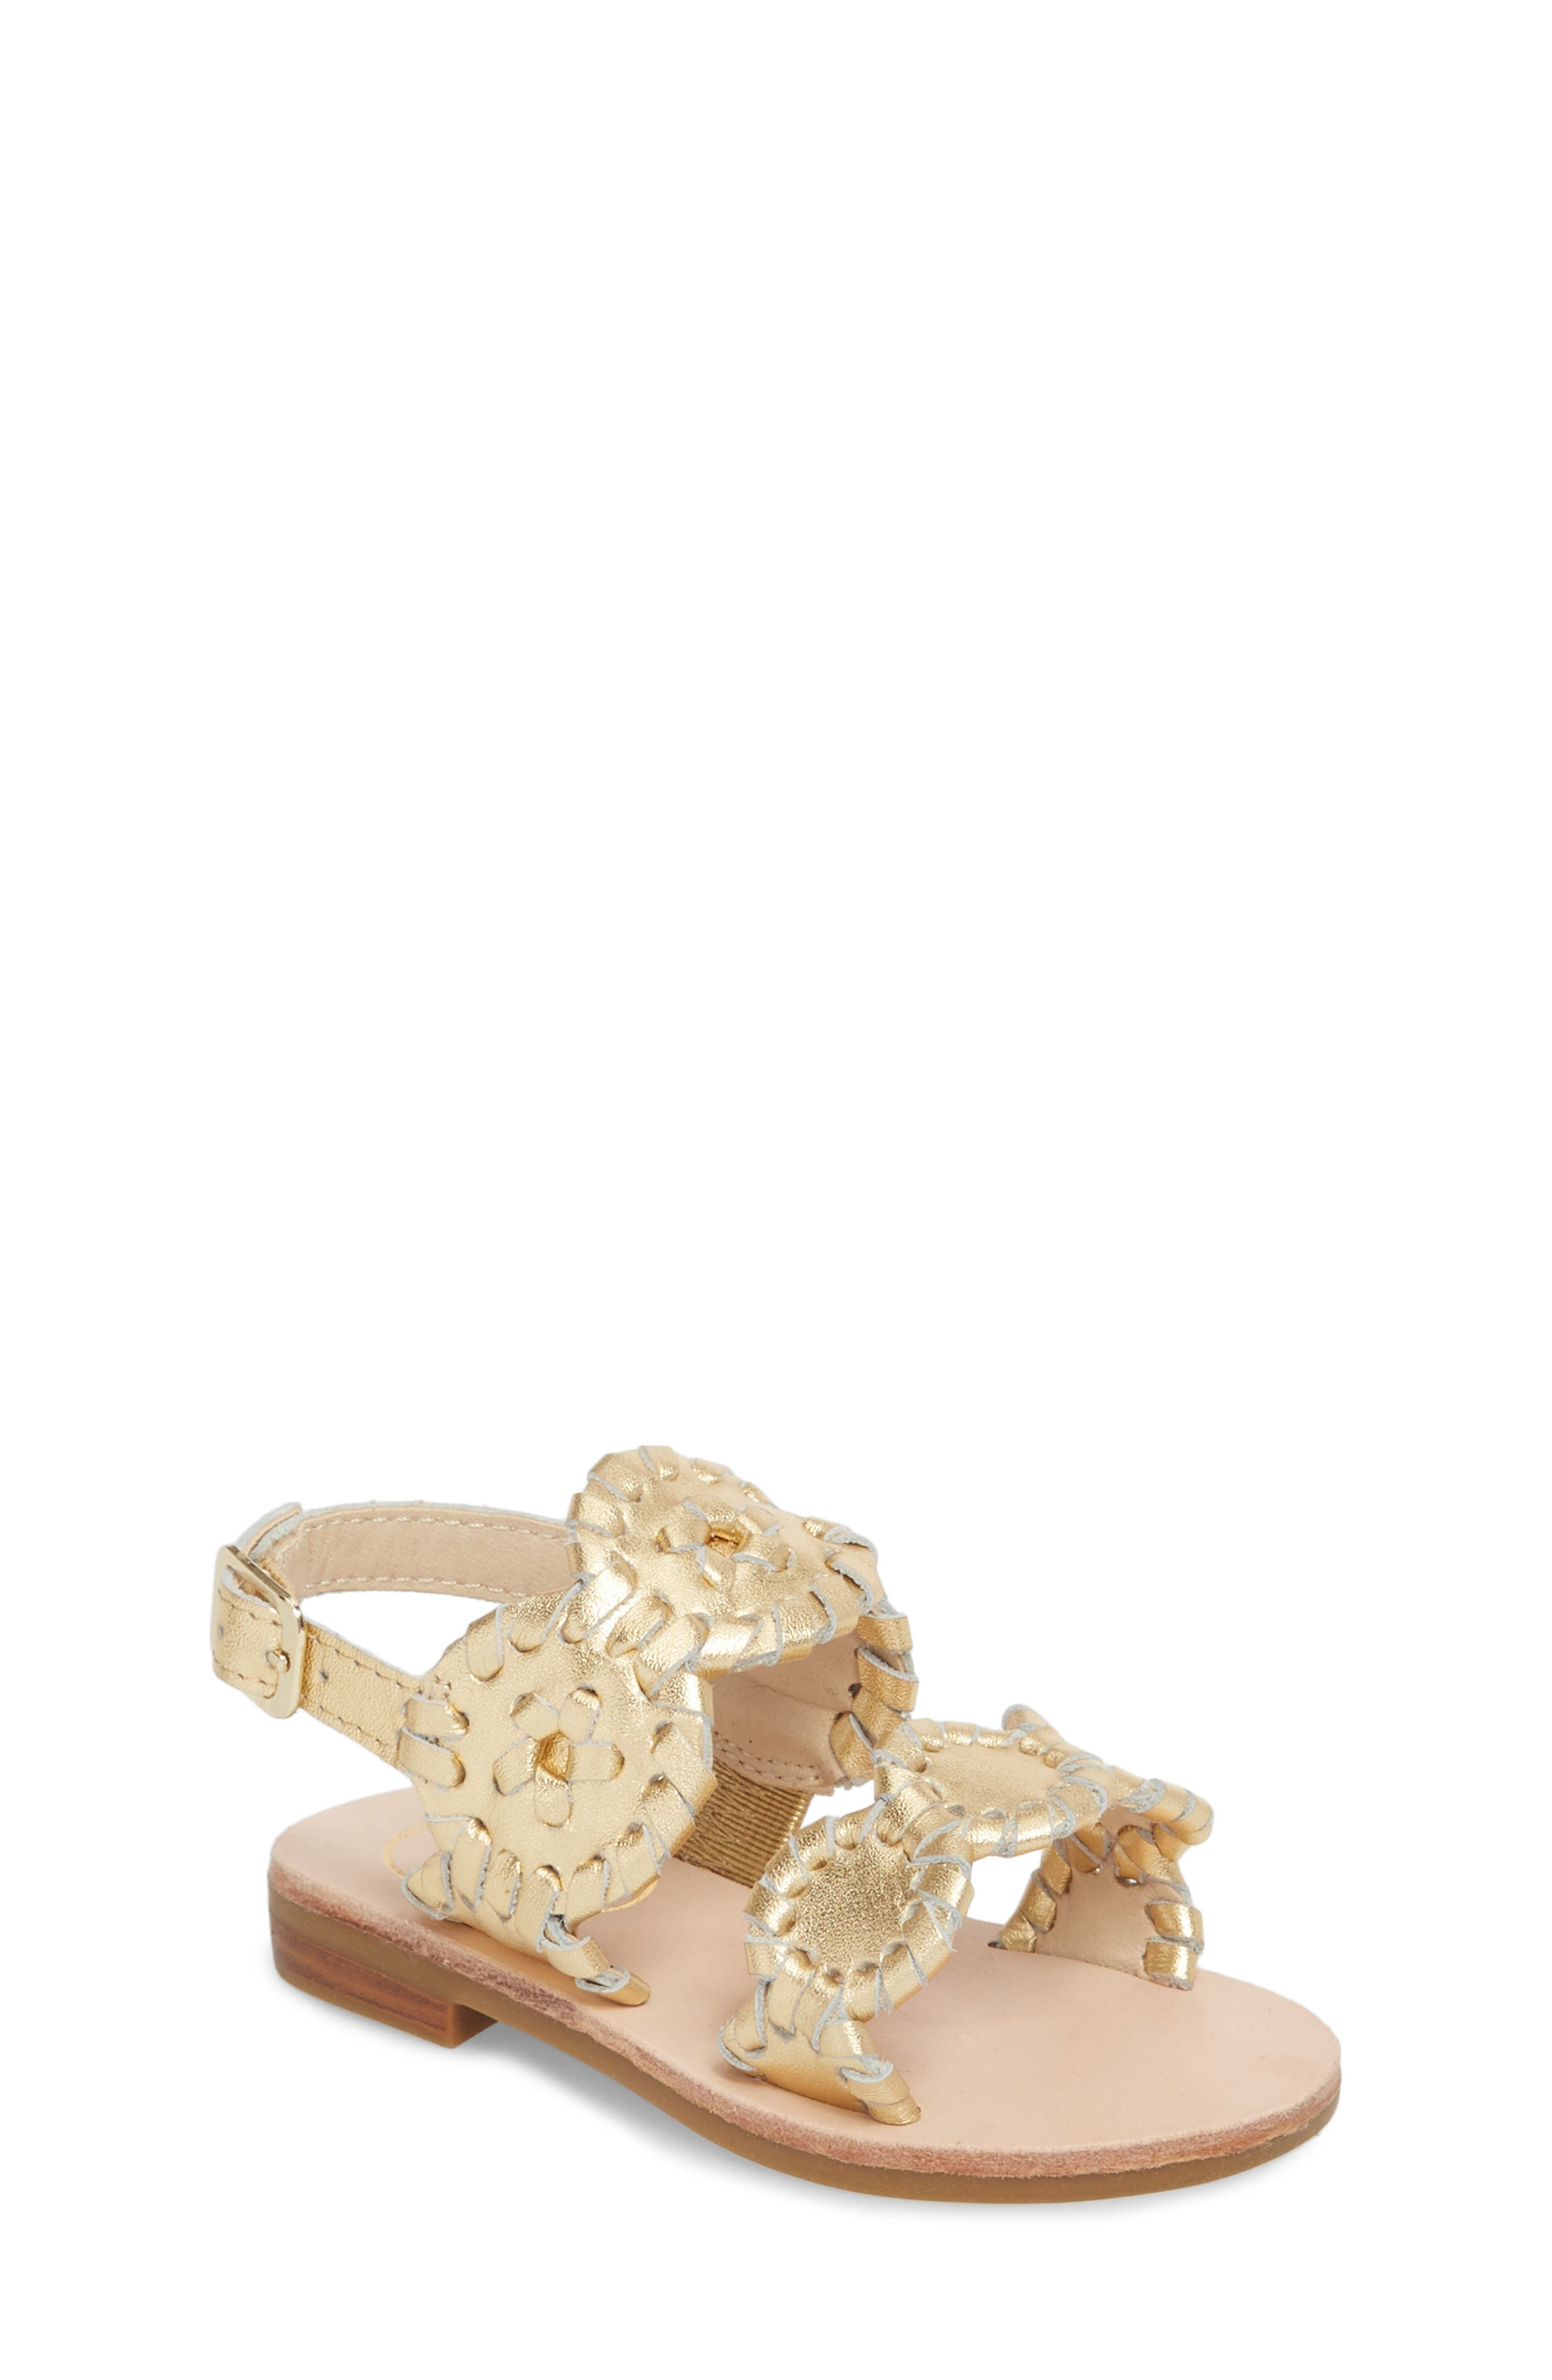 Little Miss Lauren Sandal,                             Main thumbnail 1, color,                             GOLD LEATHER